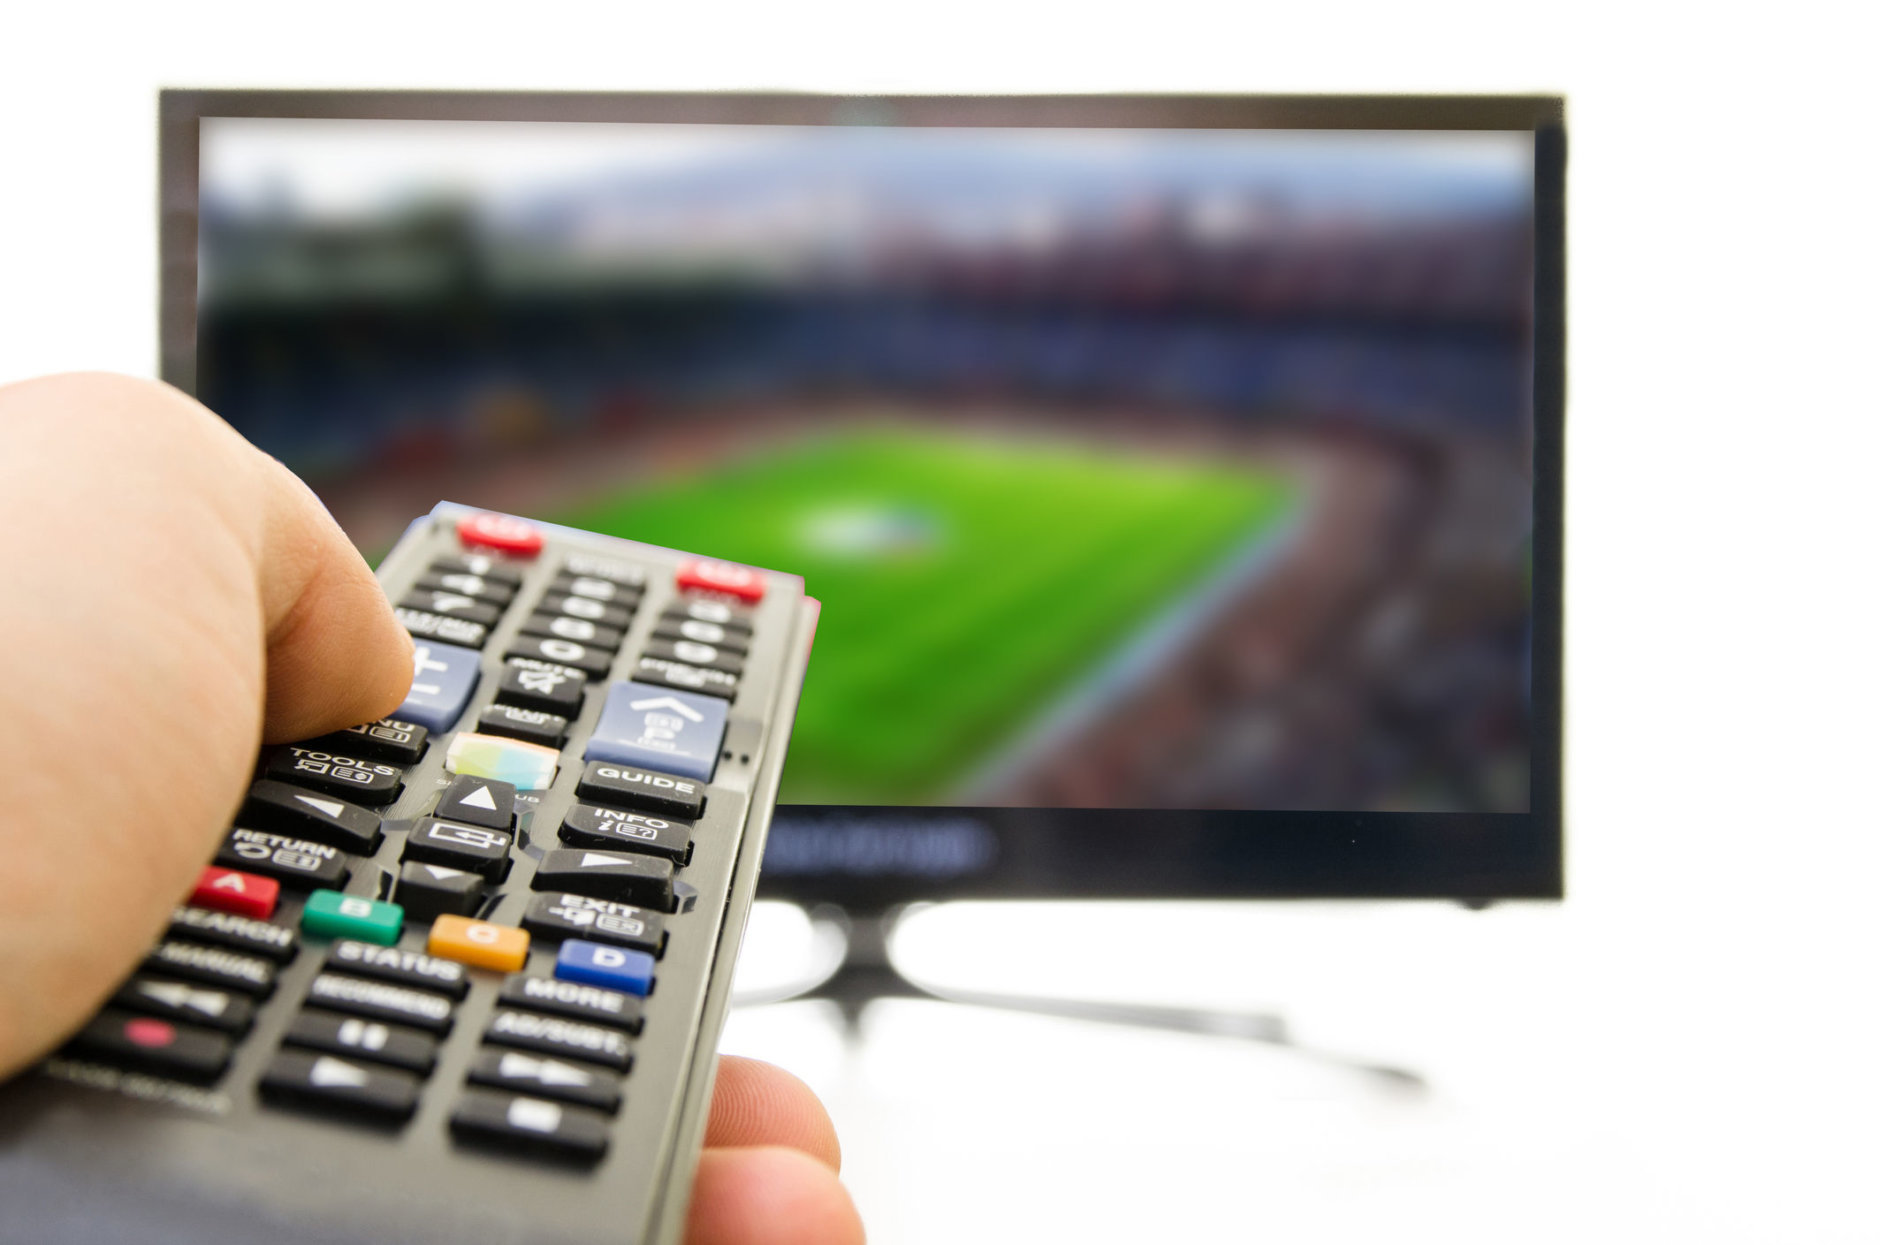 Armchair NFL fans with Verizon FiOS who are hoping to watch Sunday's Chargers-Ravens wild card game on Channel 9 should consider making alternative viewing plans. (Getty Images/iStockphoto/turk_stock_photographer)